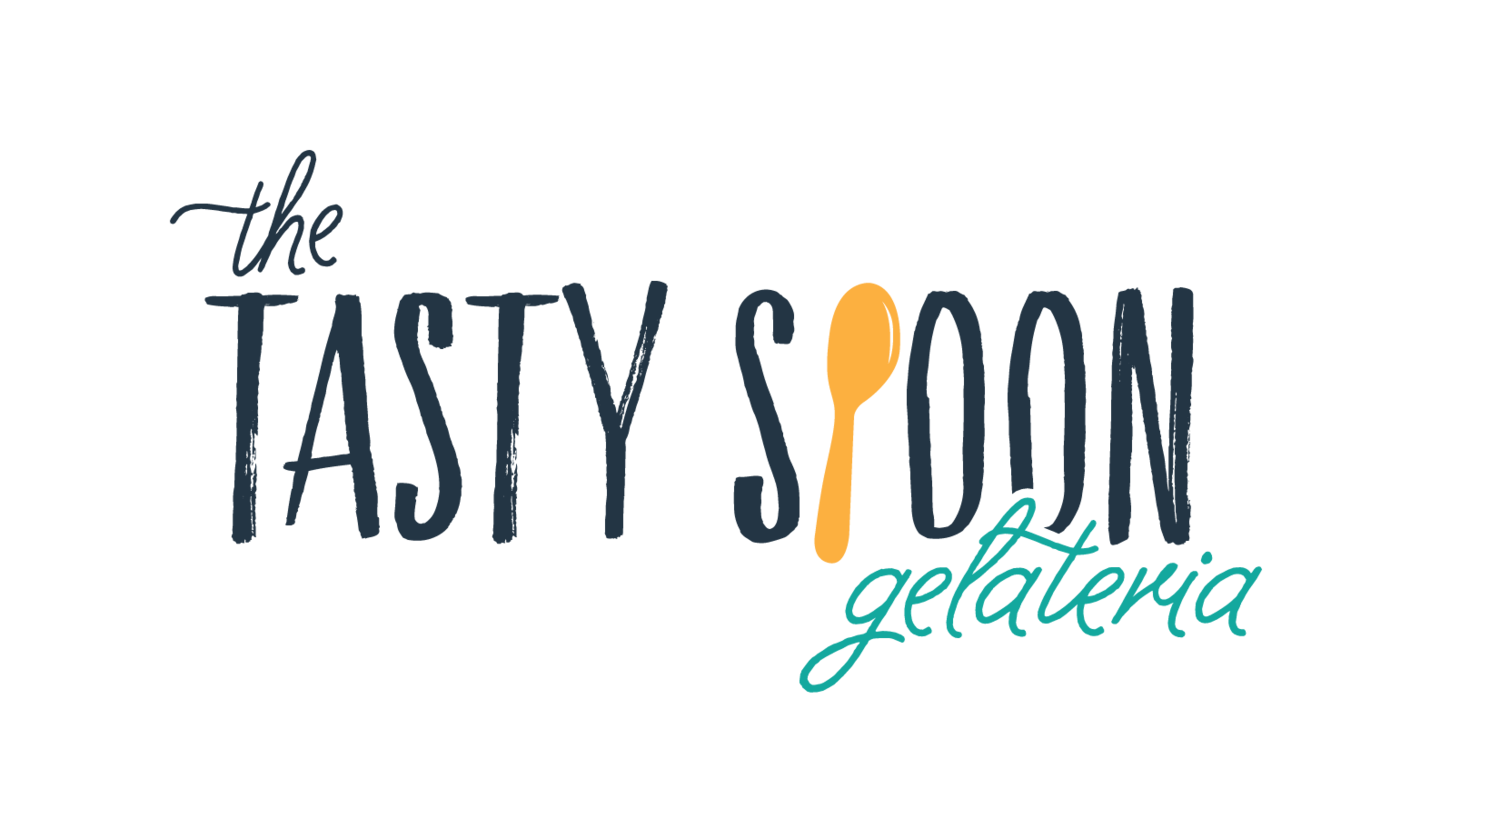 The Tasty Spoon